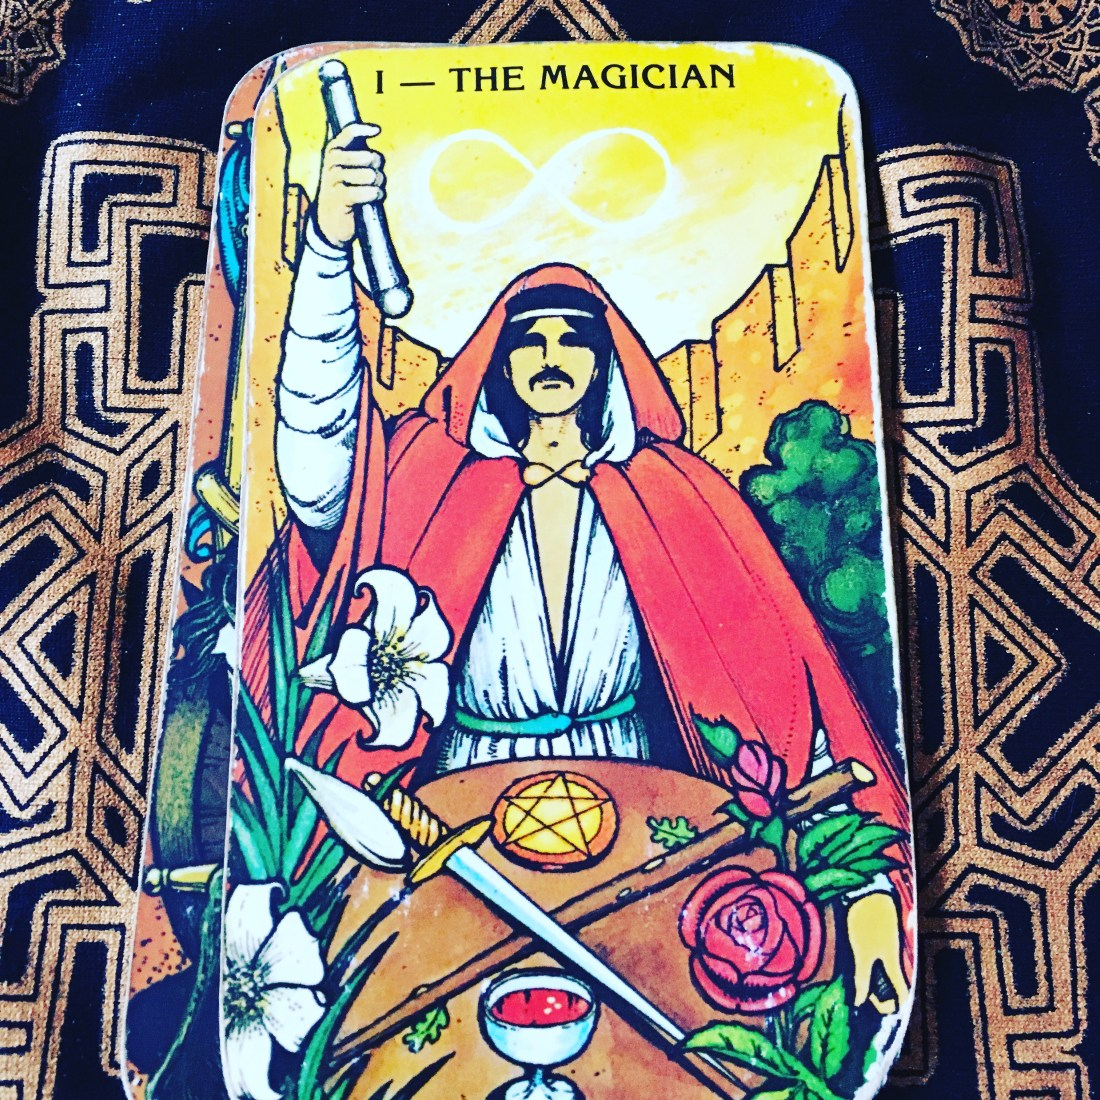 Tarot Card, The Magician, Major Arcana